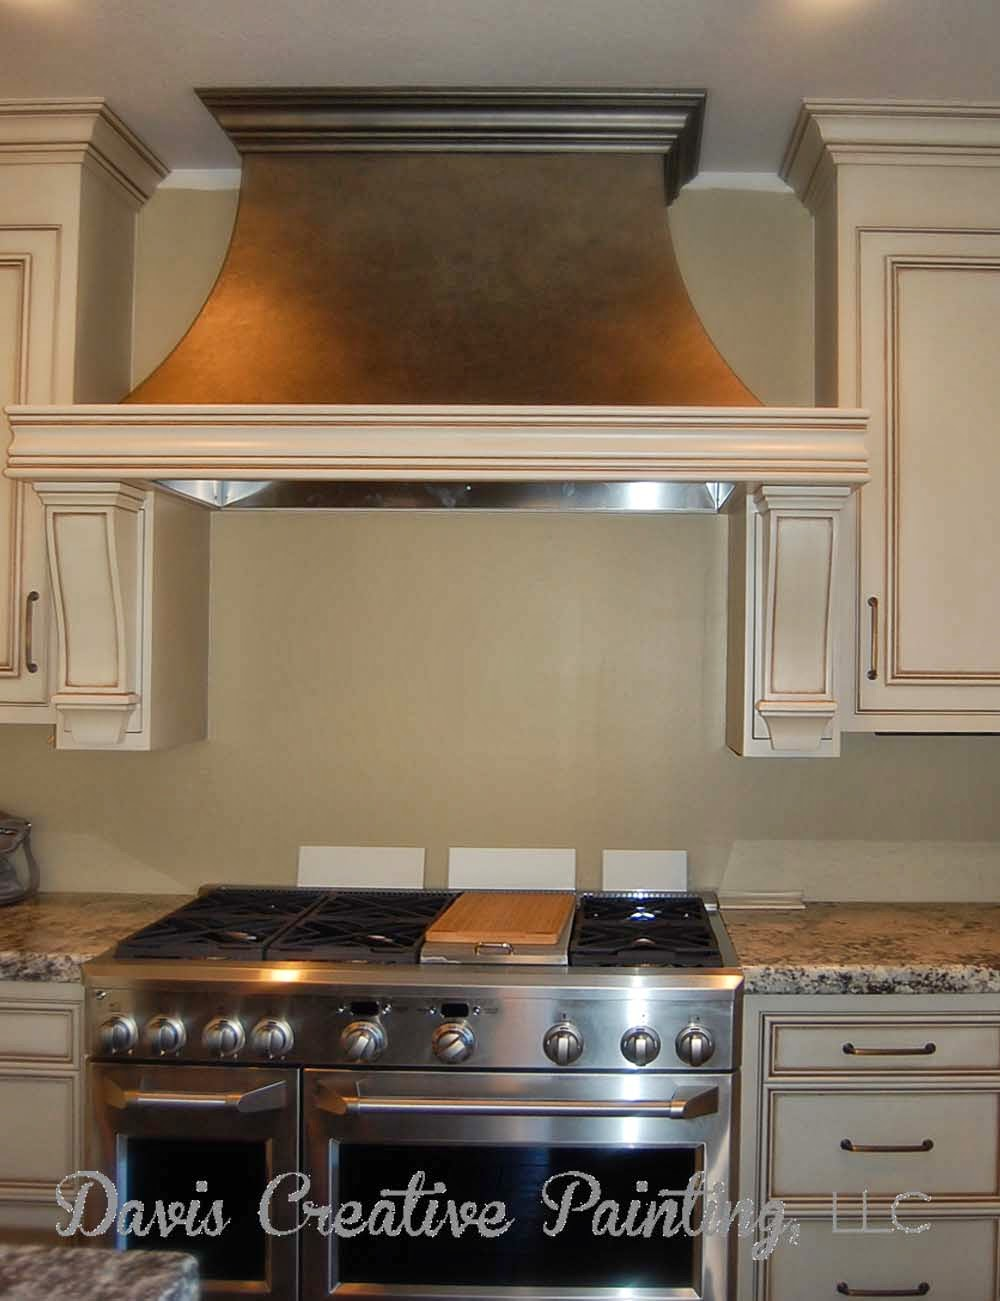 davis creative painting metallic painted range hood